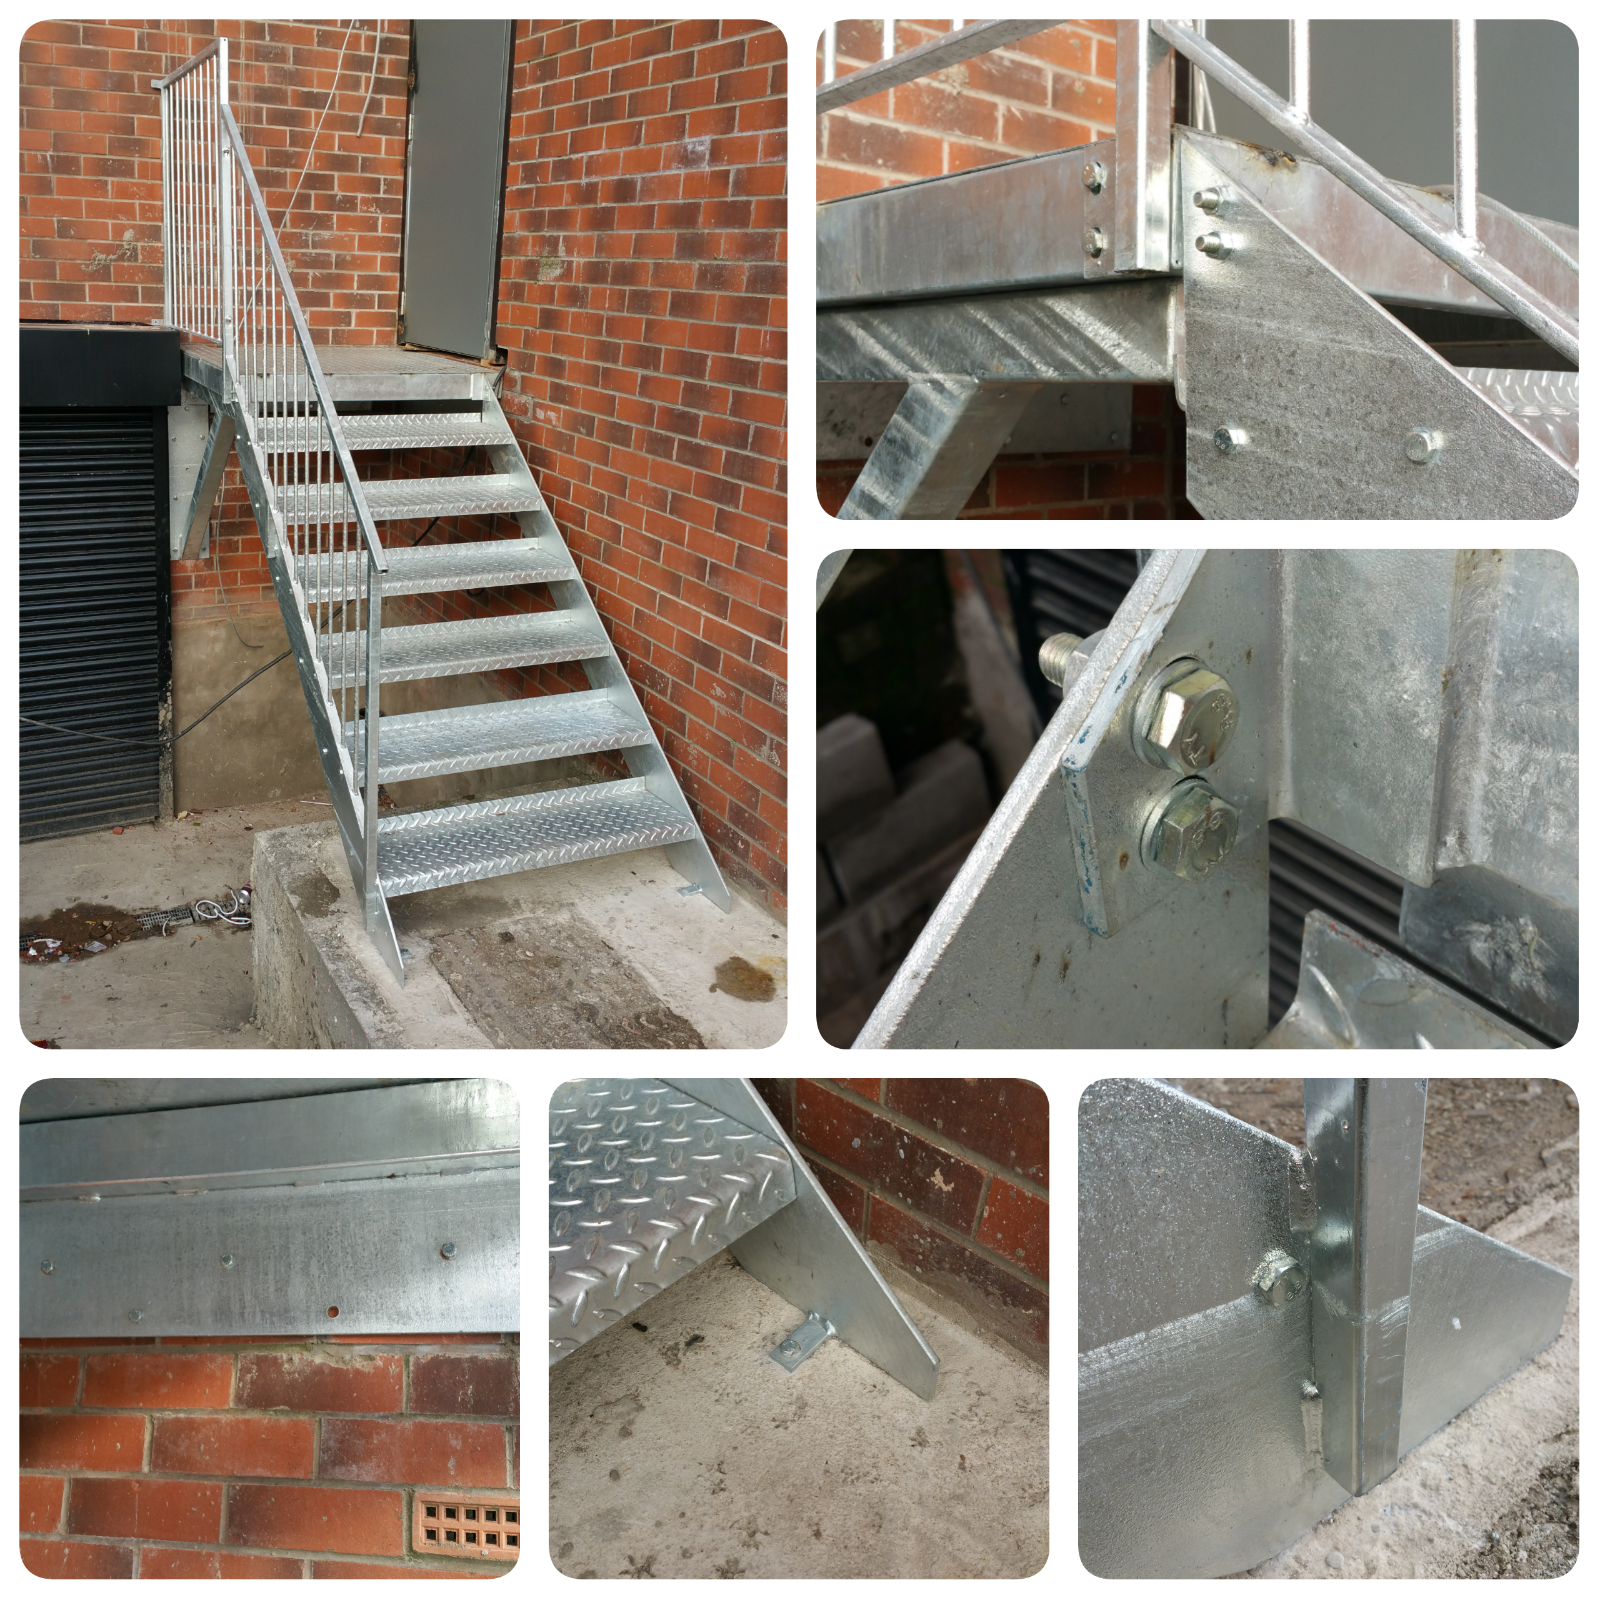 2.4m High Mezzanine Staircase Metal Staircase Fire Escape 750 step £995 + VAT